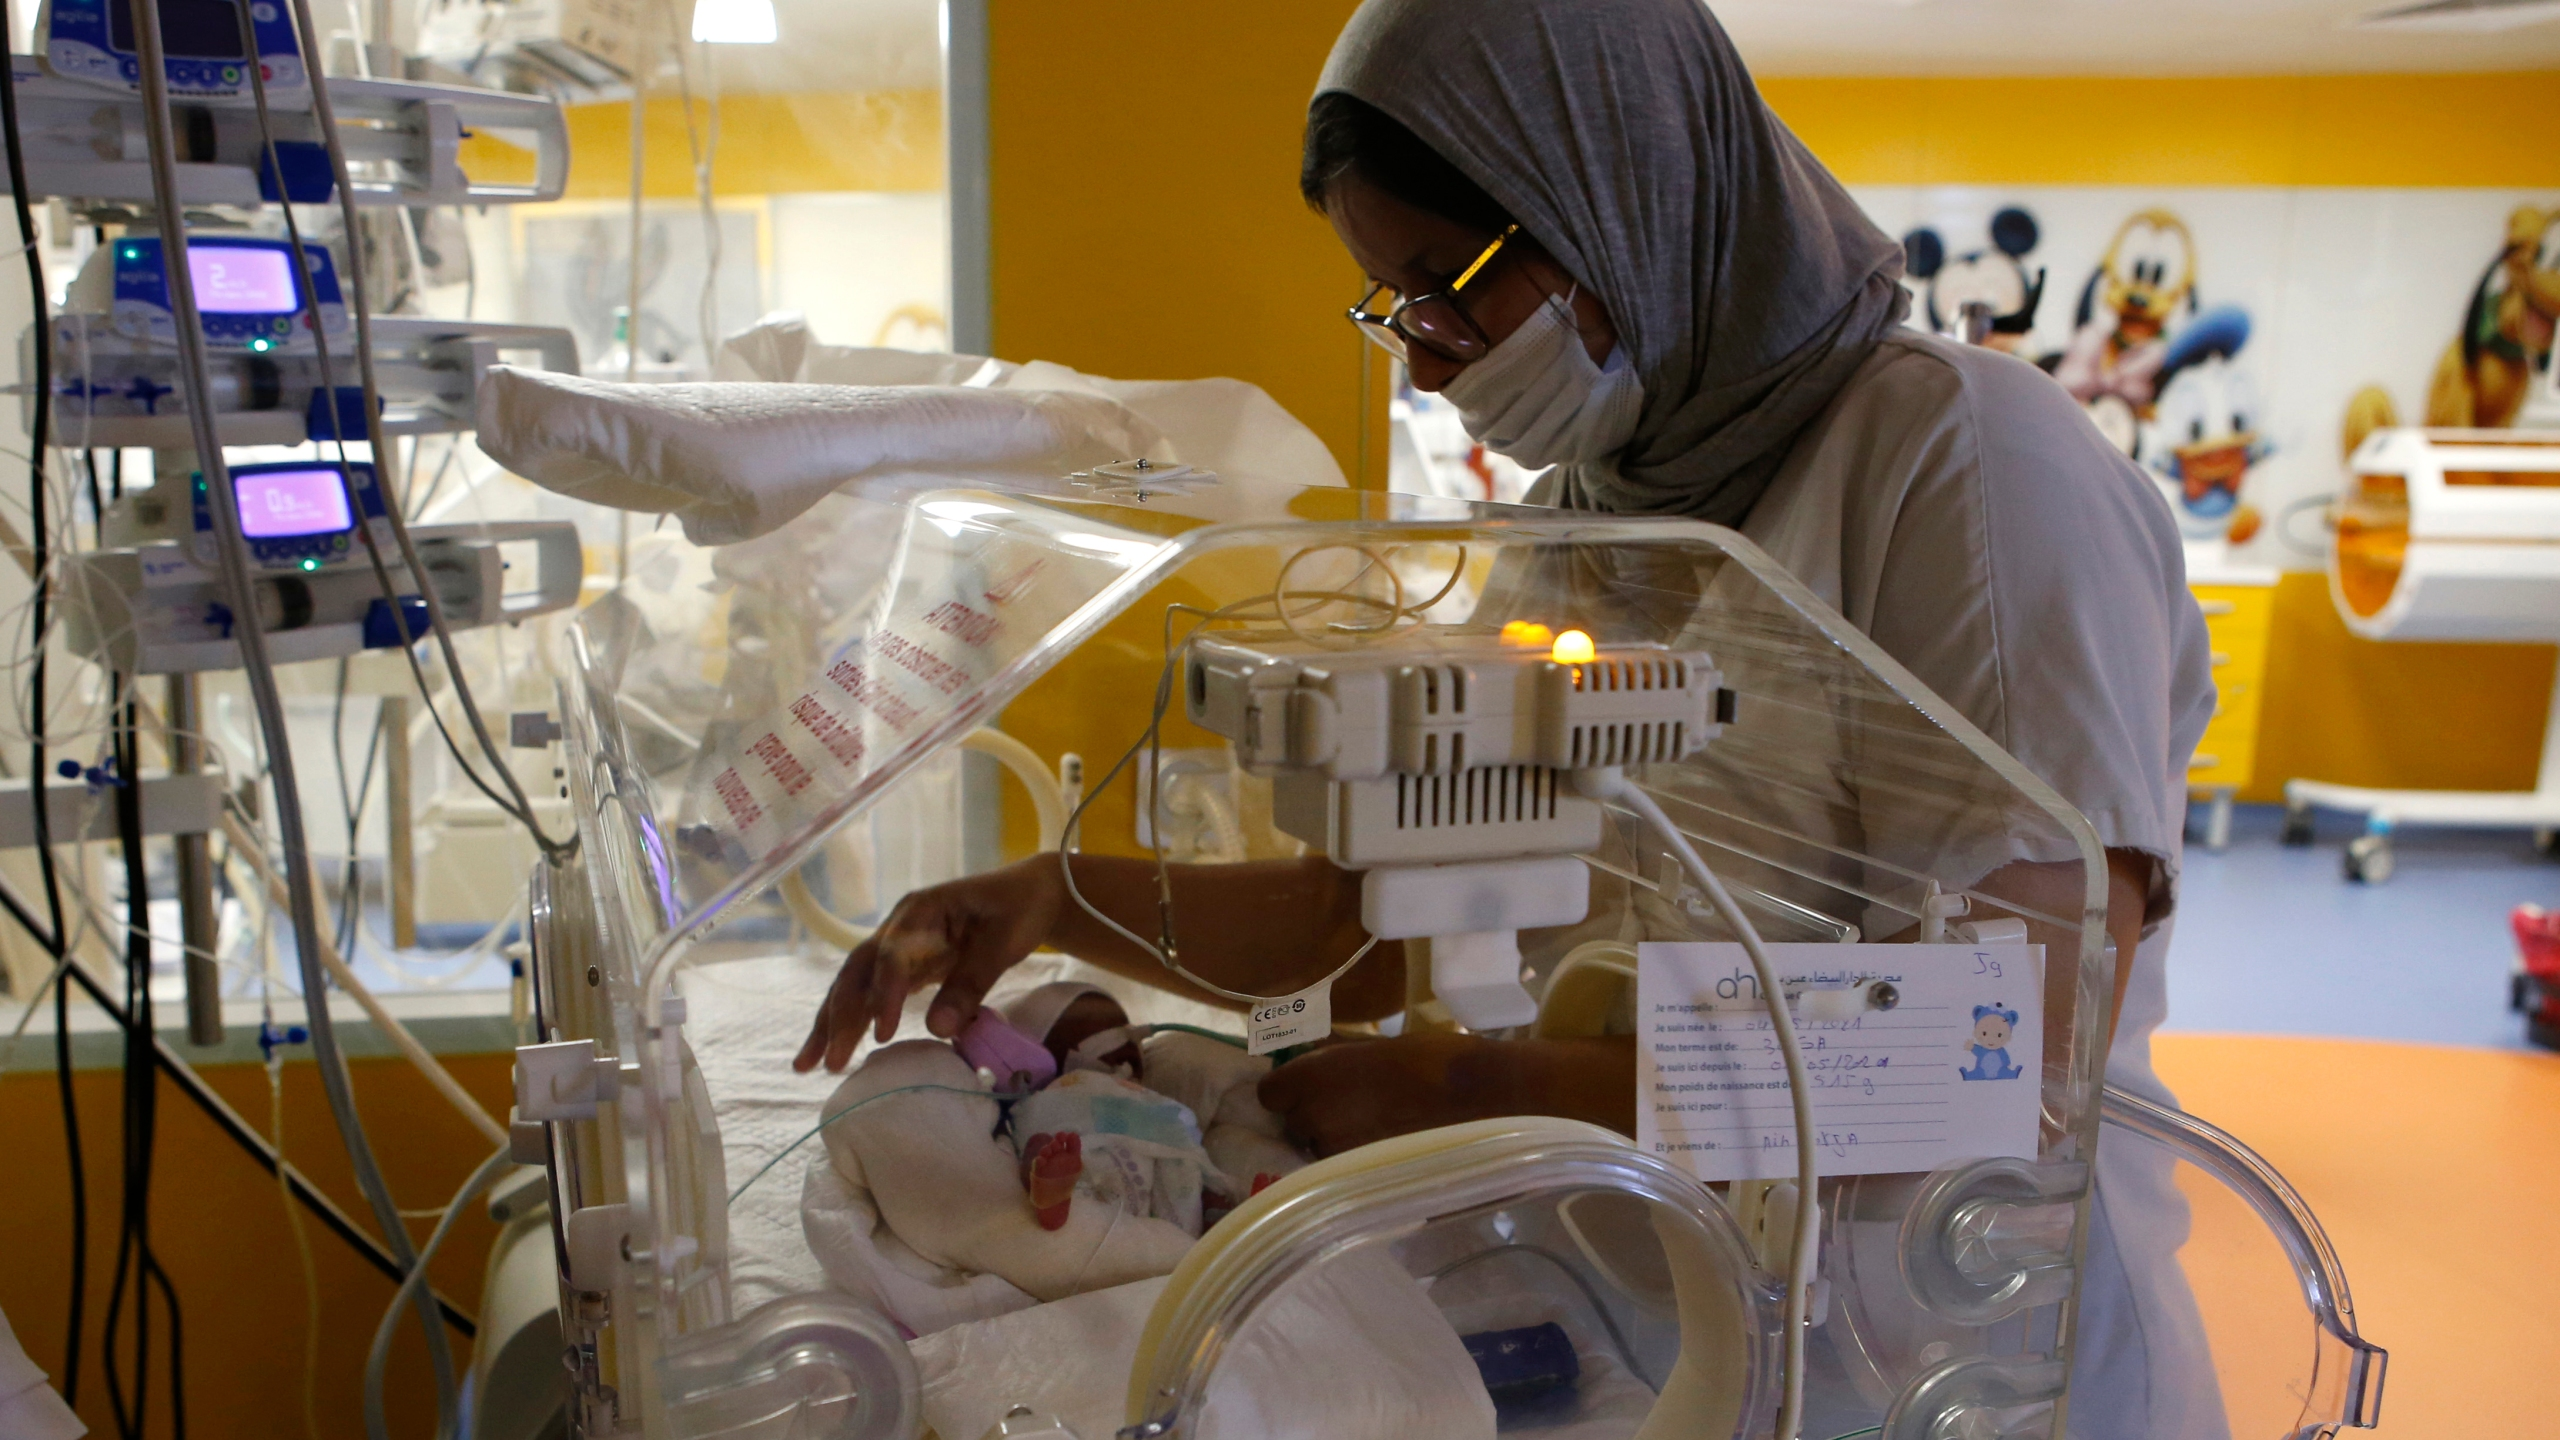 Moroccan nurse takes care of baby